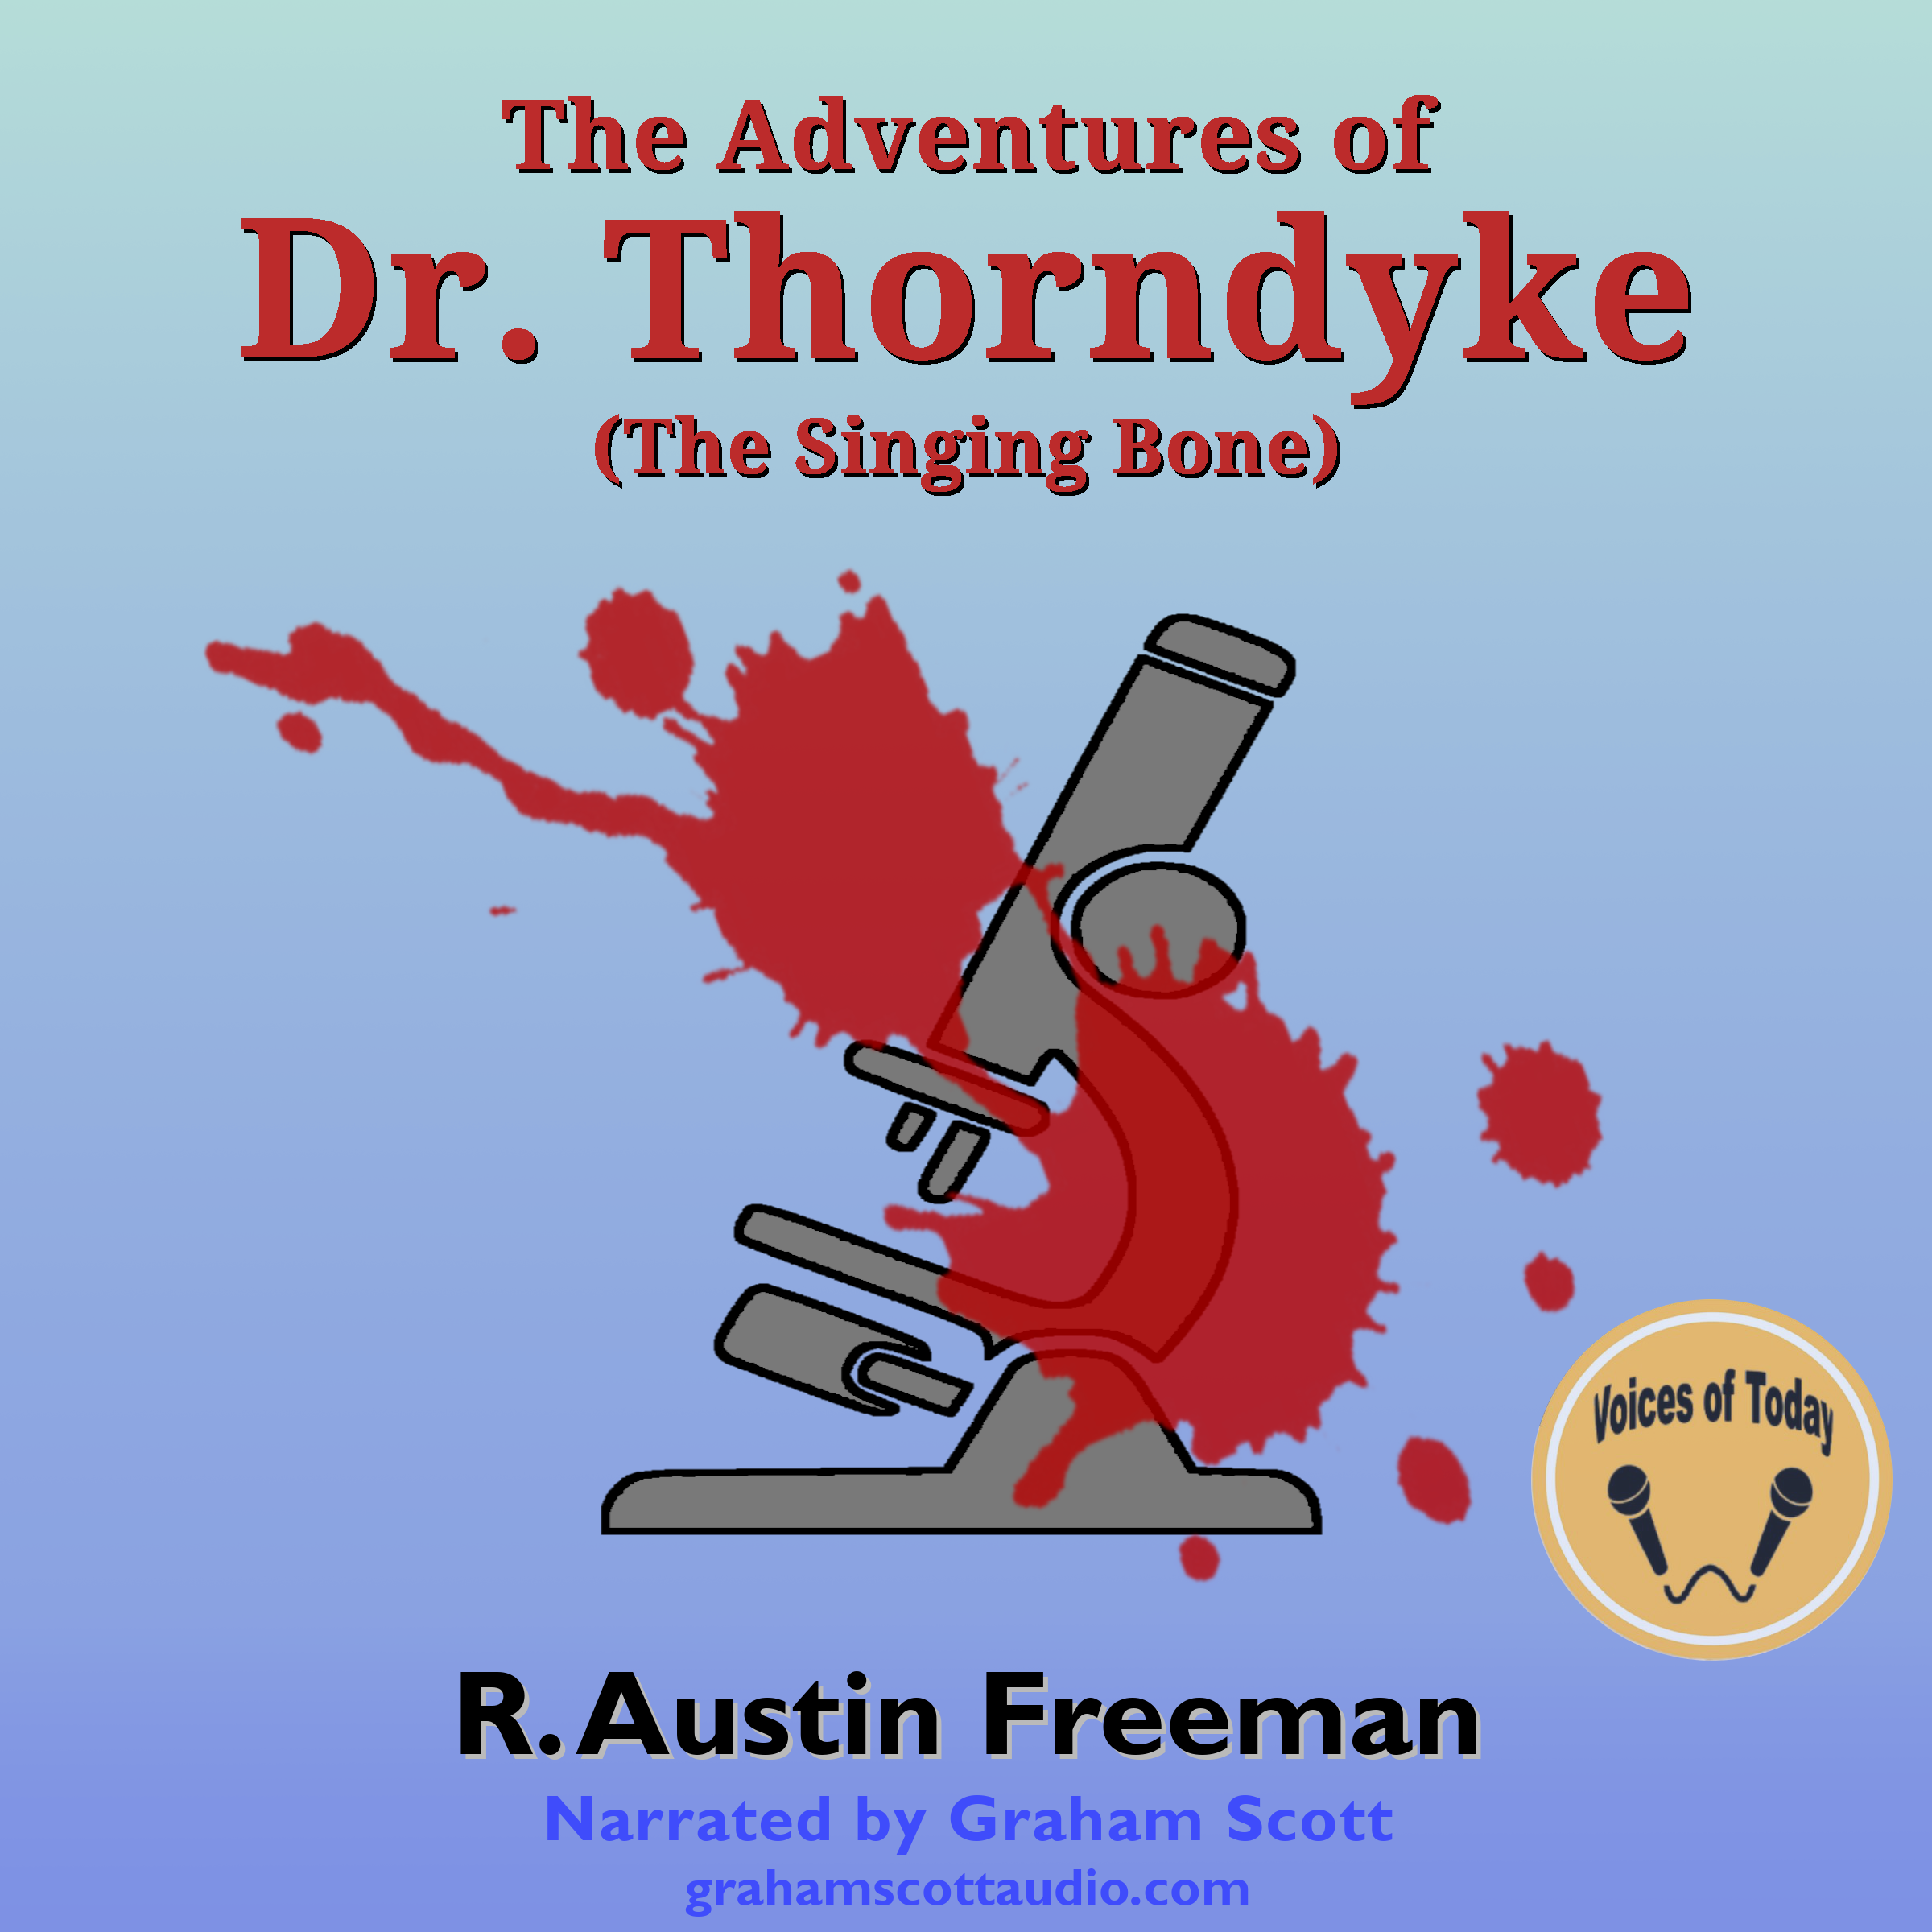 The Adventures of Dr Thorndyke